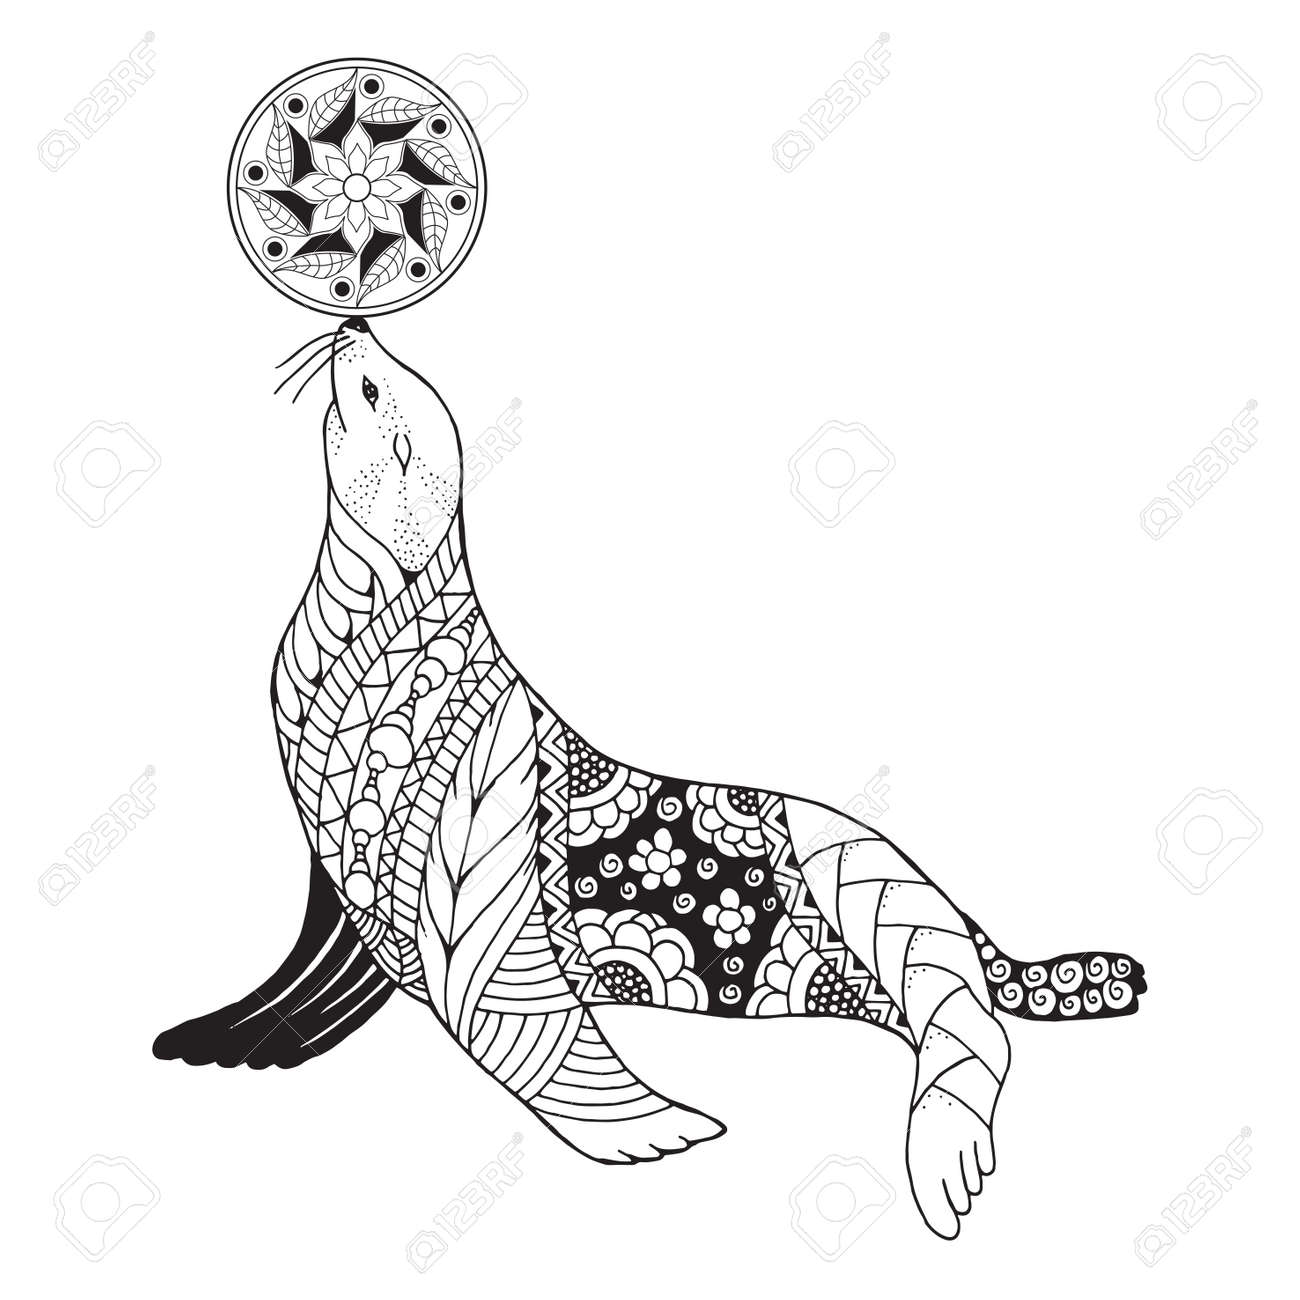 Zentangle stylized seal balancing ball on nose. Vector, illustration, freehand pencil, pattern. Zen art. Black and white illustration on white background. Adult anti-stress coloring book. Print for t-shirts. - 81014458